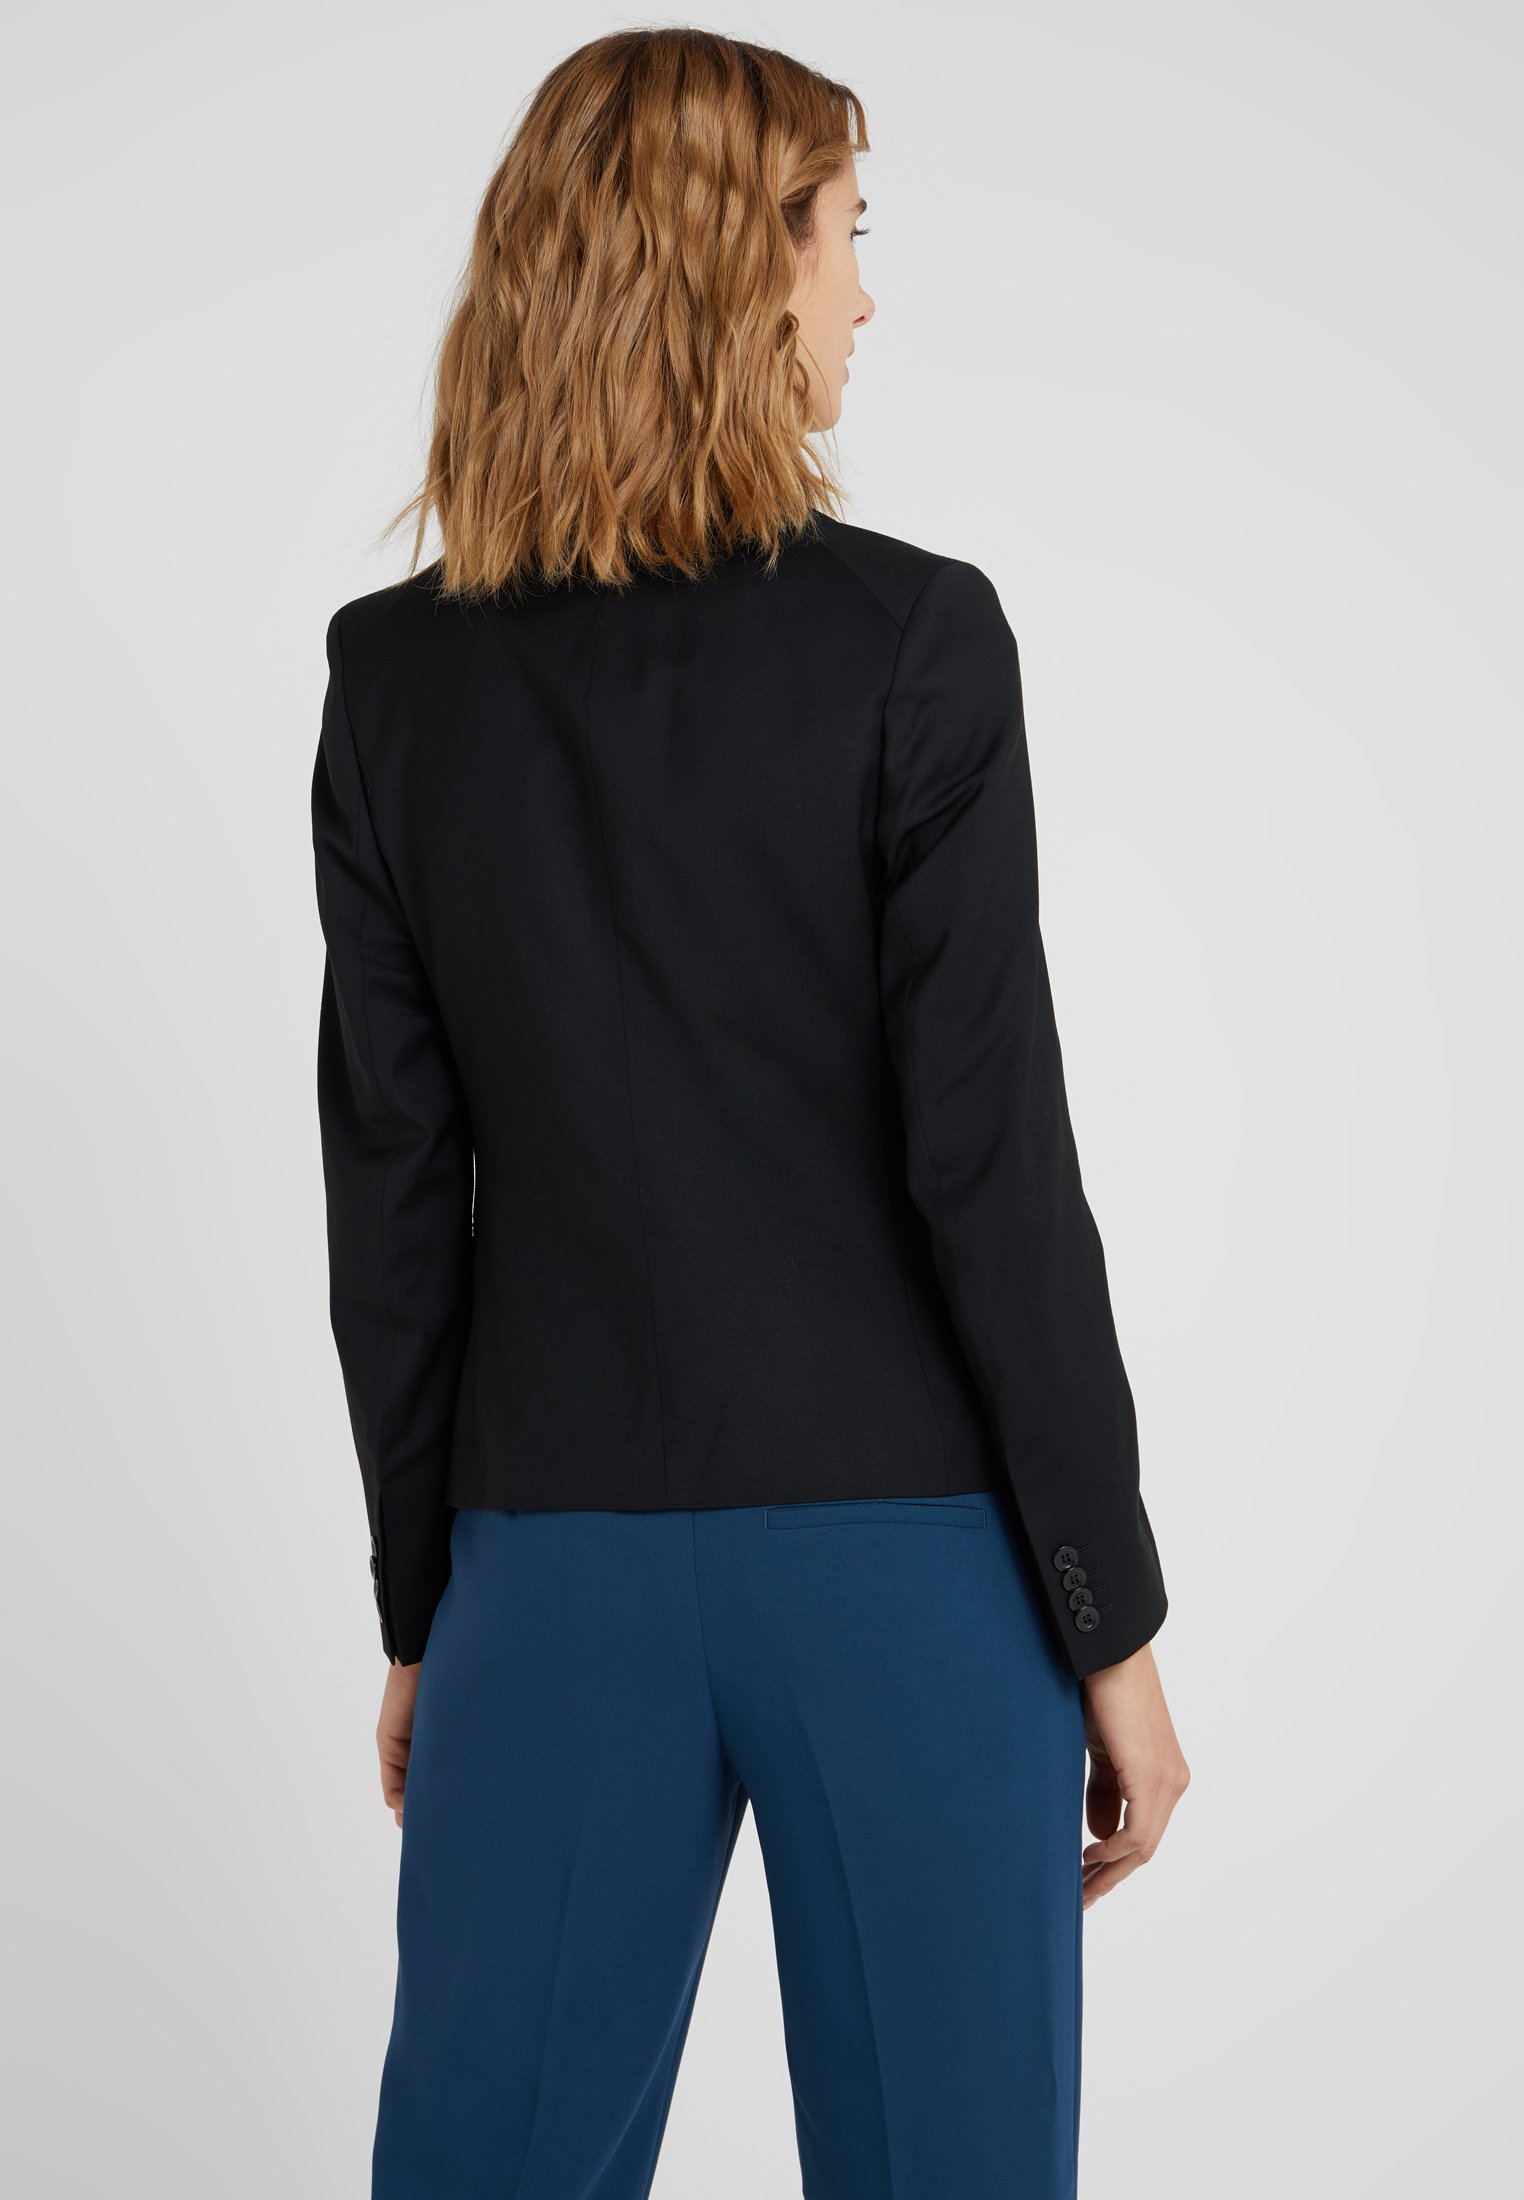 Filippa K Blazer - black